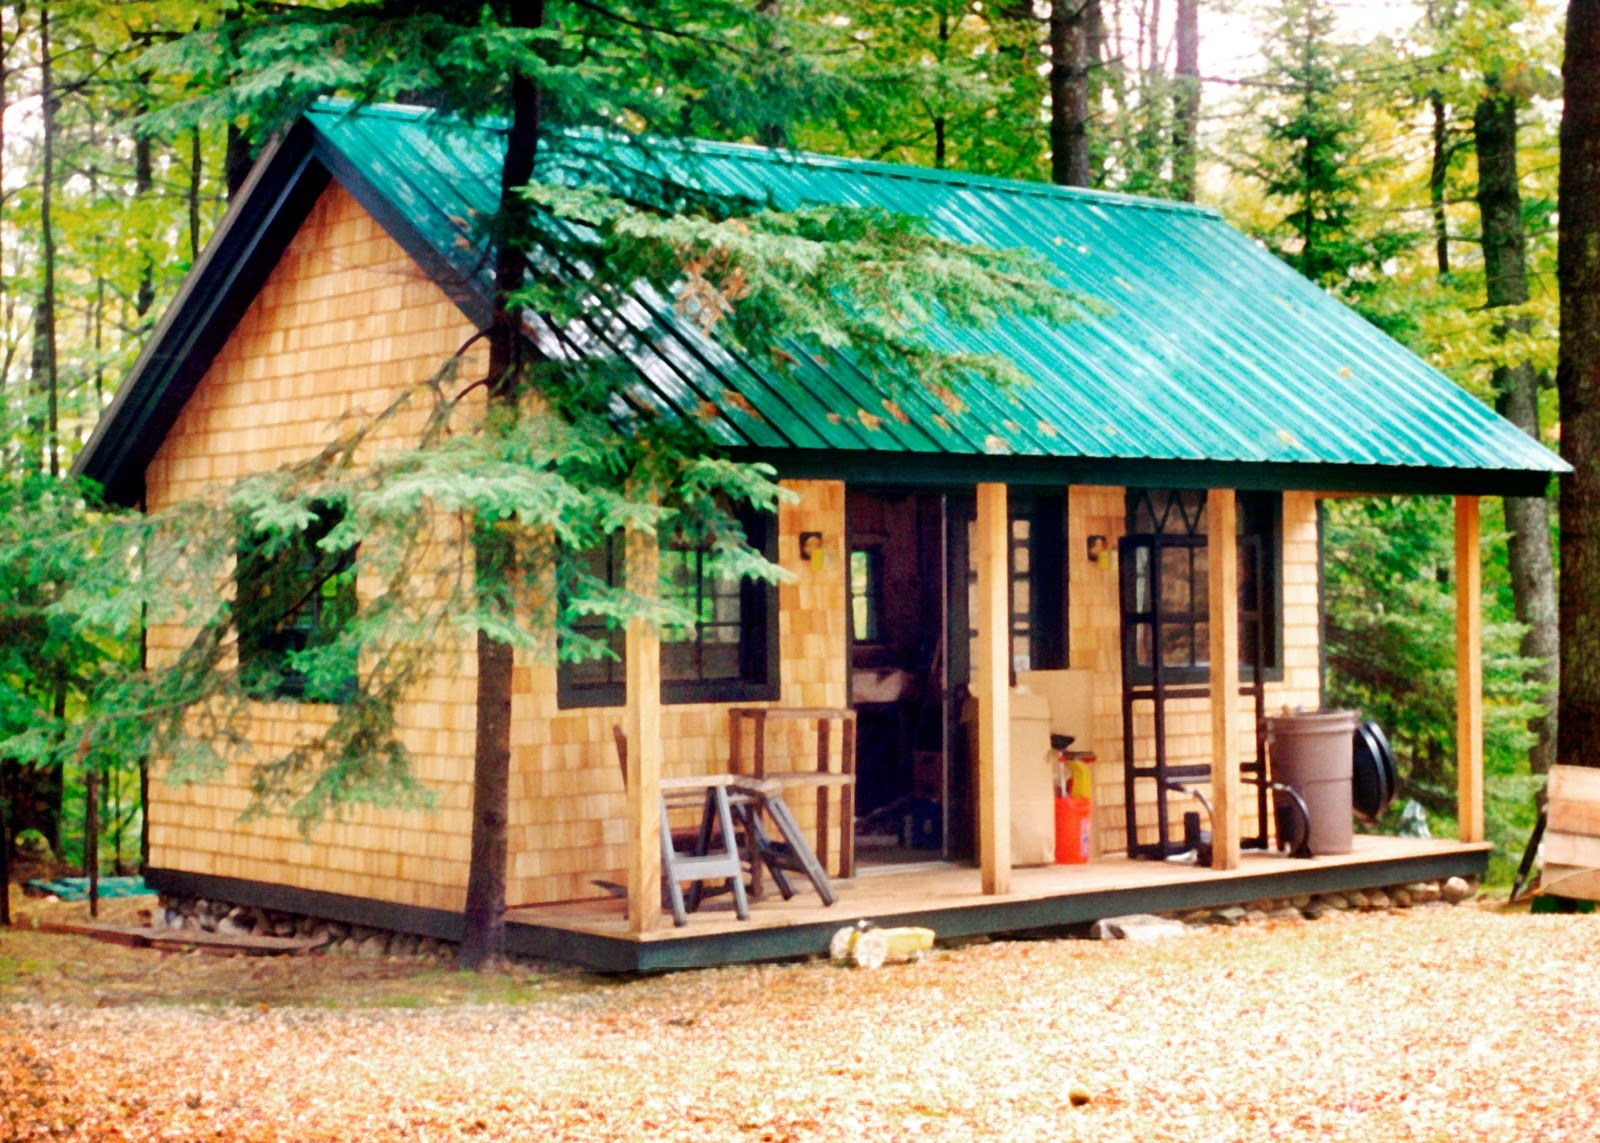 Wondrous 17 Best Images About Cabins On Pinterest Backyard Cottage Tiny Largest Home Design Picture Inspirations Pitcheantrous